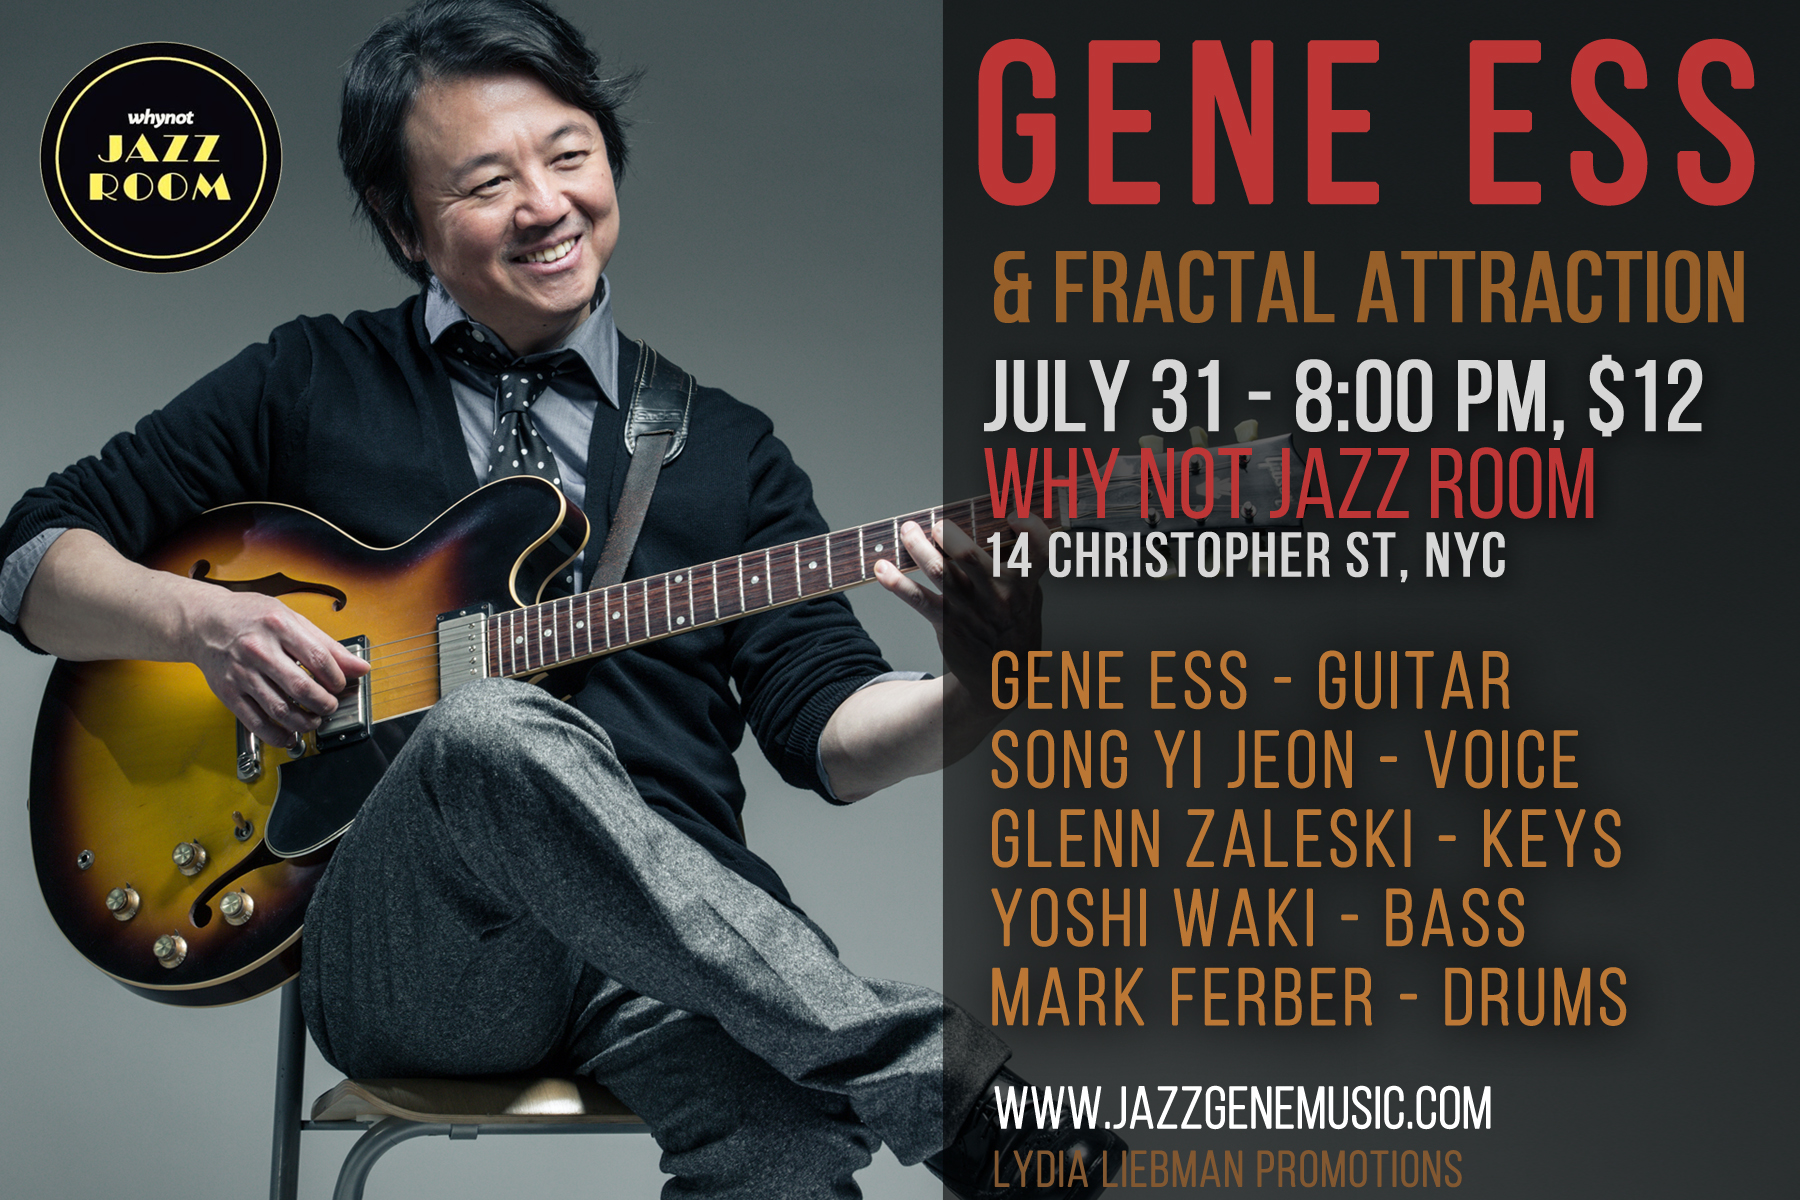 Gene Ess & Fractal Attraction, Whynot Jazz Room, NYC, 7/31/15